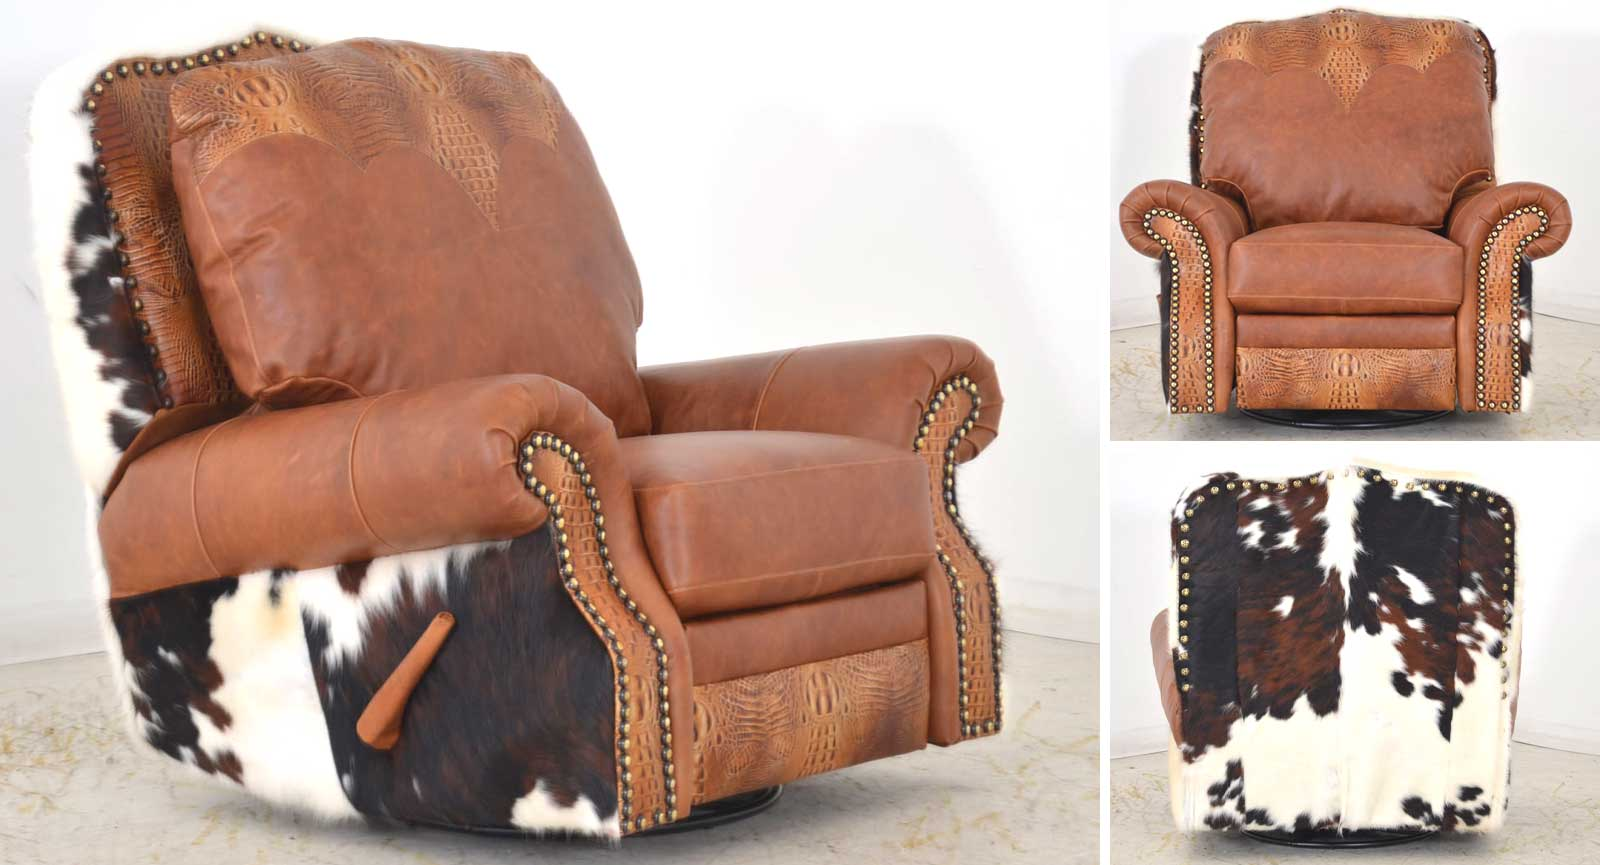 Hair On Hide Chair Milano Texas Home The Leather Sofa Company